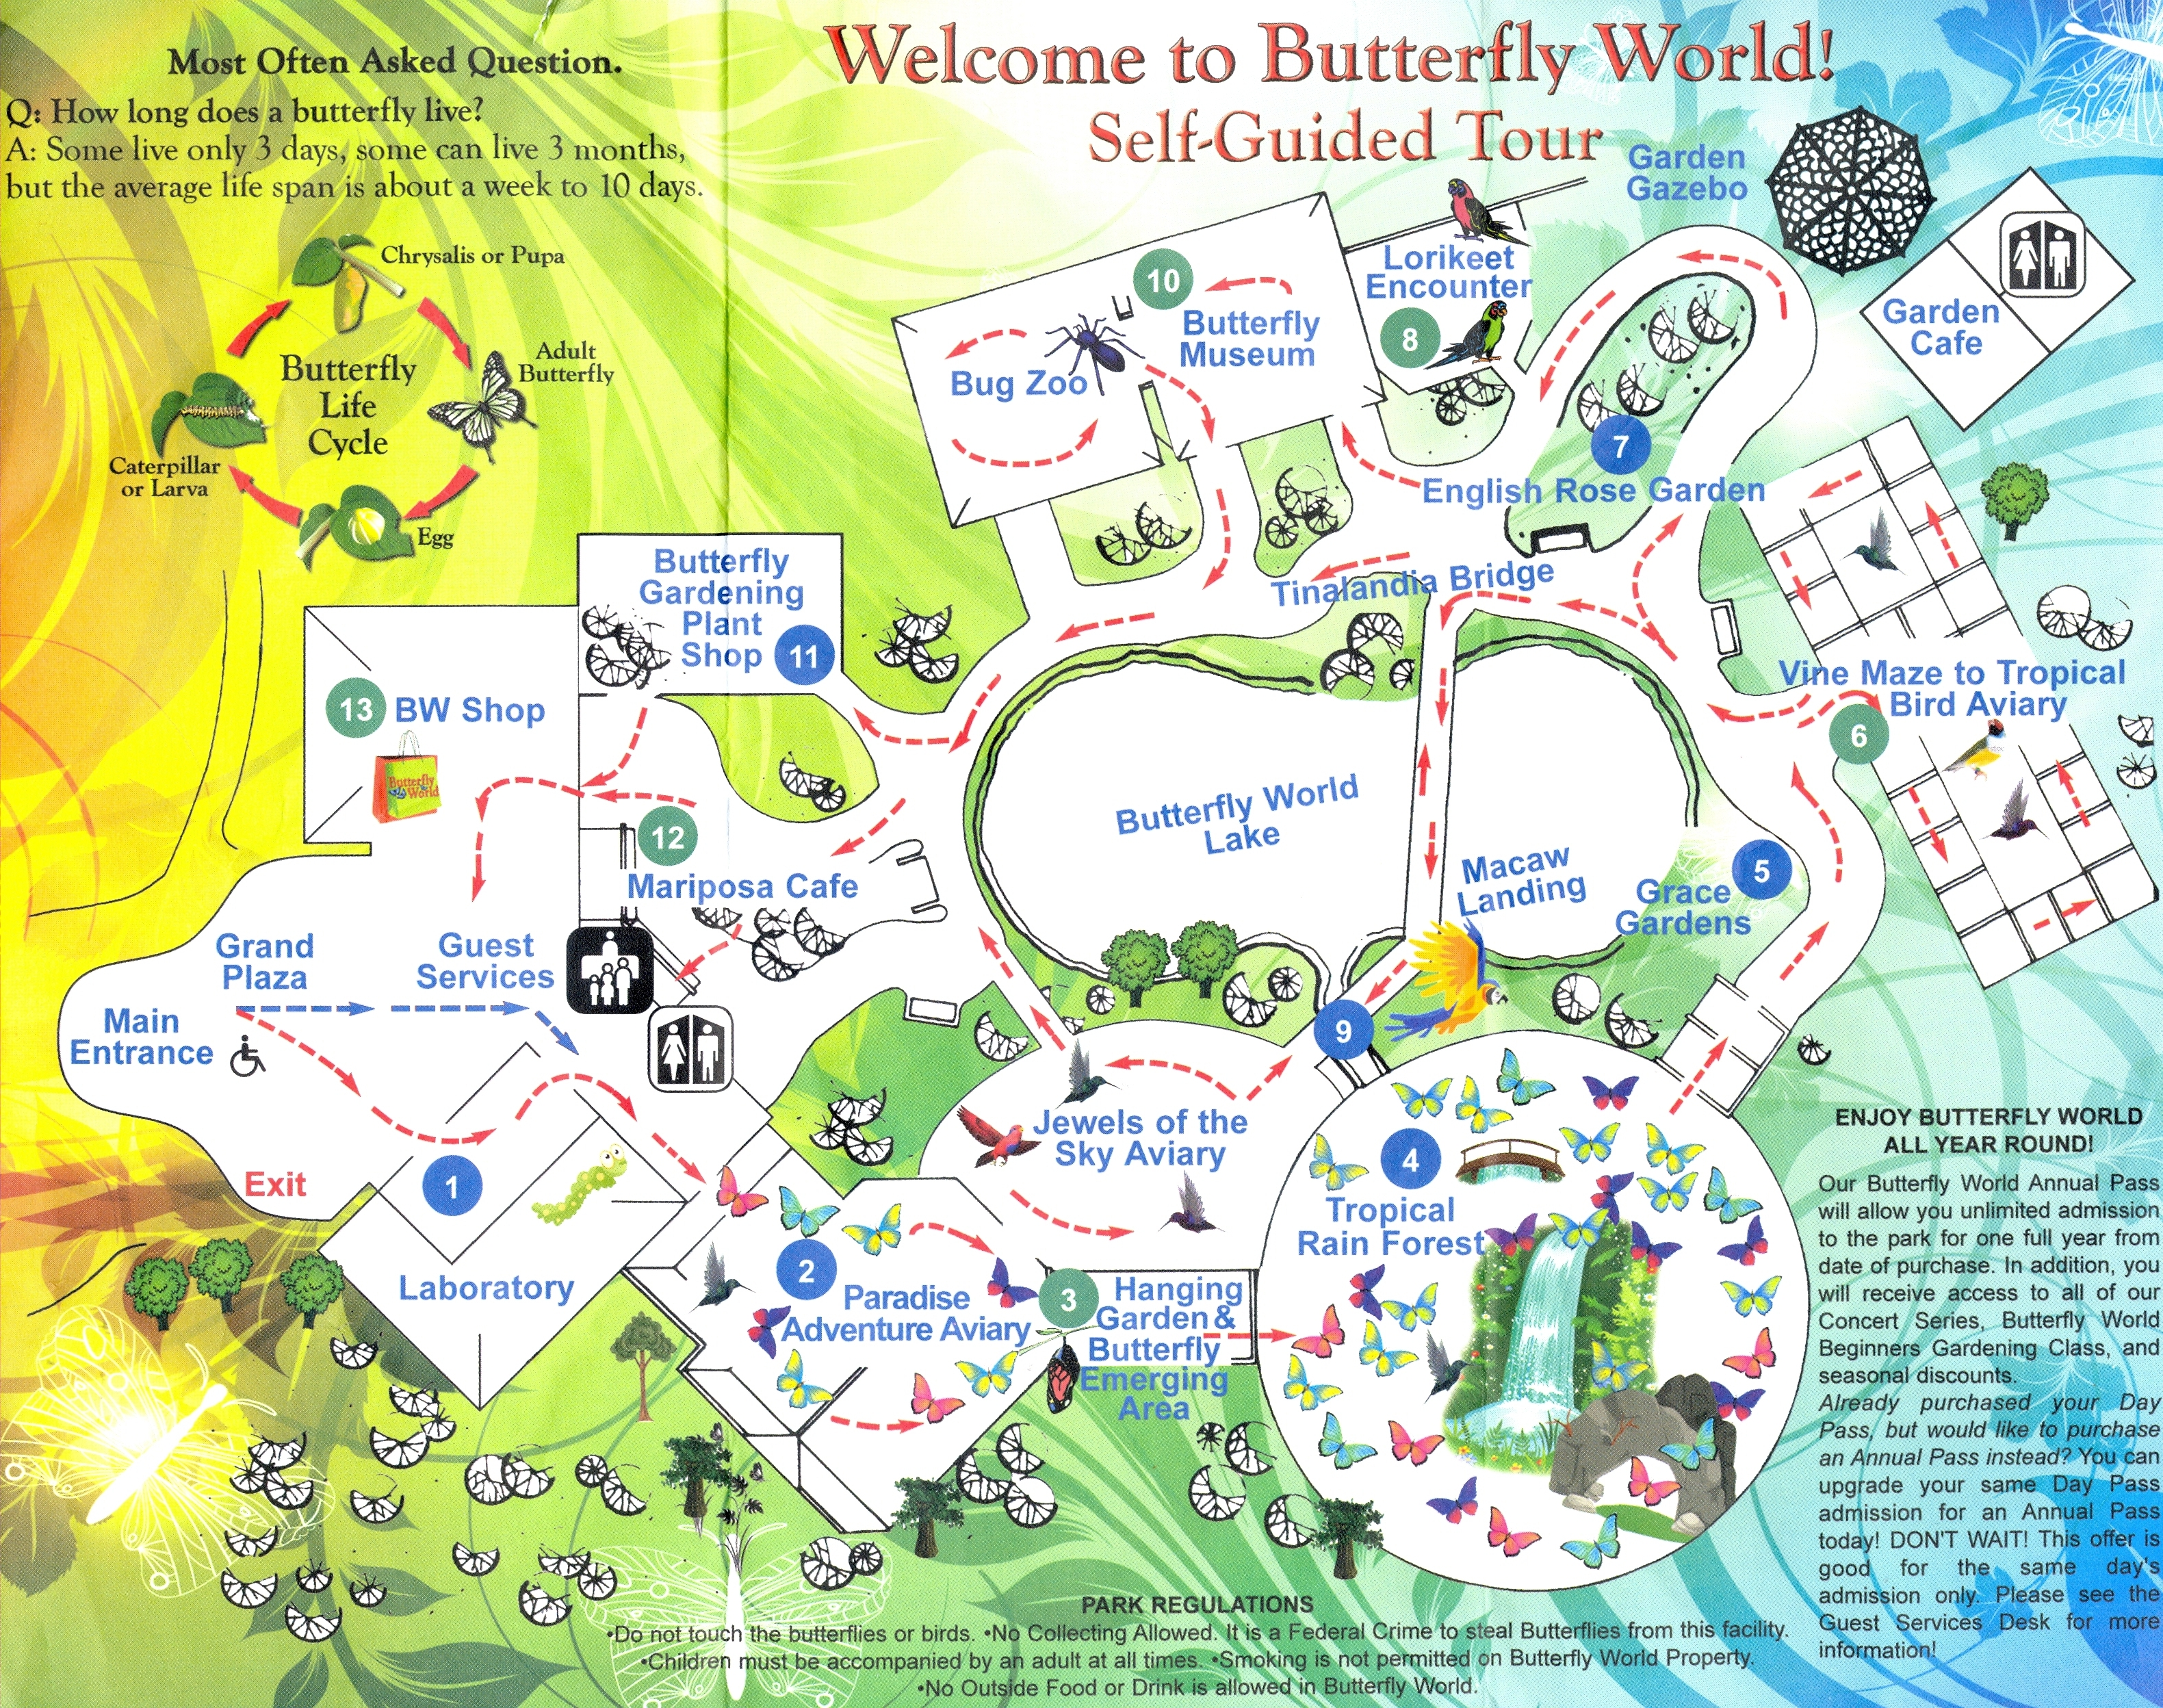 ButterflyWorld